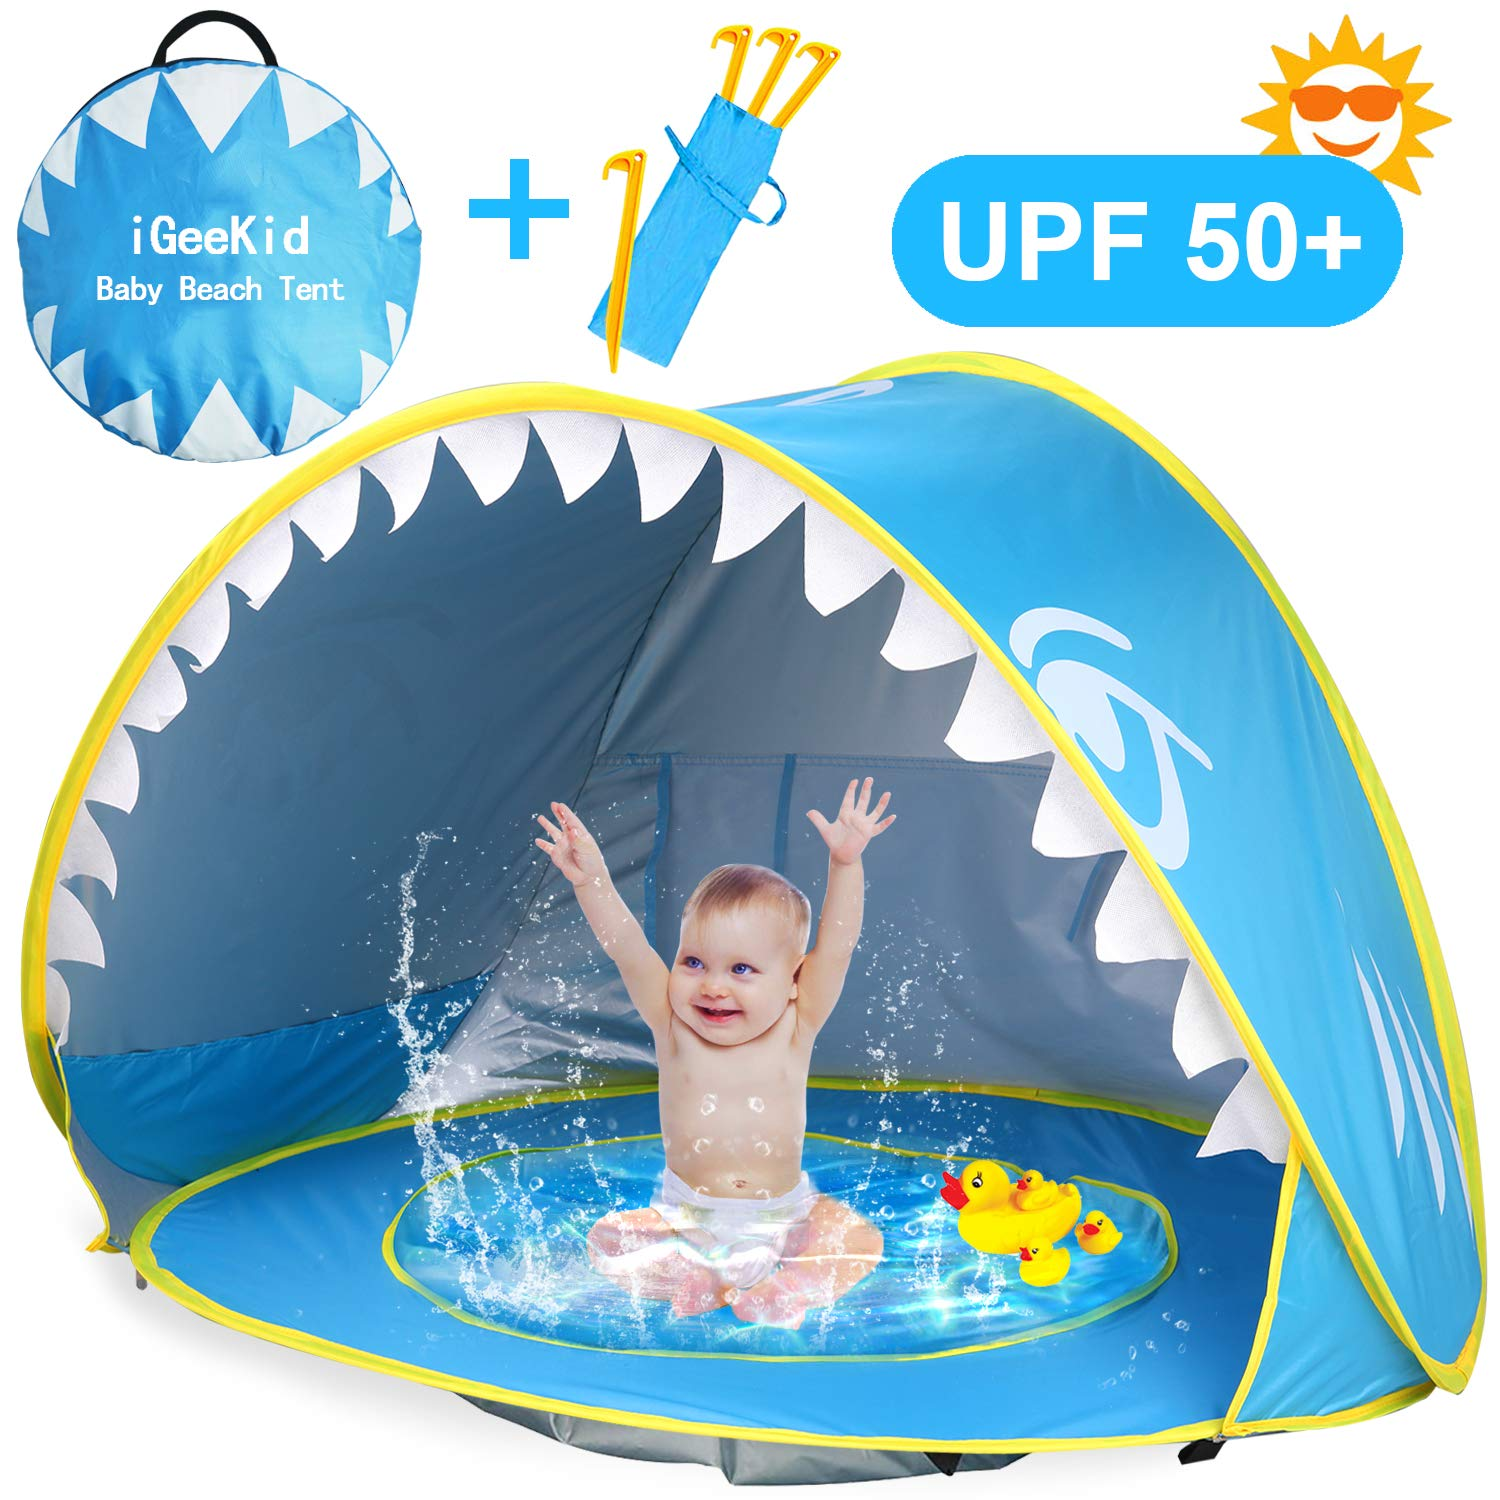 iGeeKid Baby Beach Tent, Shark Pop Up Portable Sun Shelter Tent with Pool UPF 50+ UV Protection & Waterproof Sun Tent Beach Shade Baby Pool Tent for Toddler Infant Aged 0-4